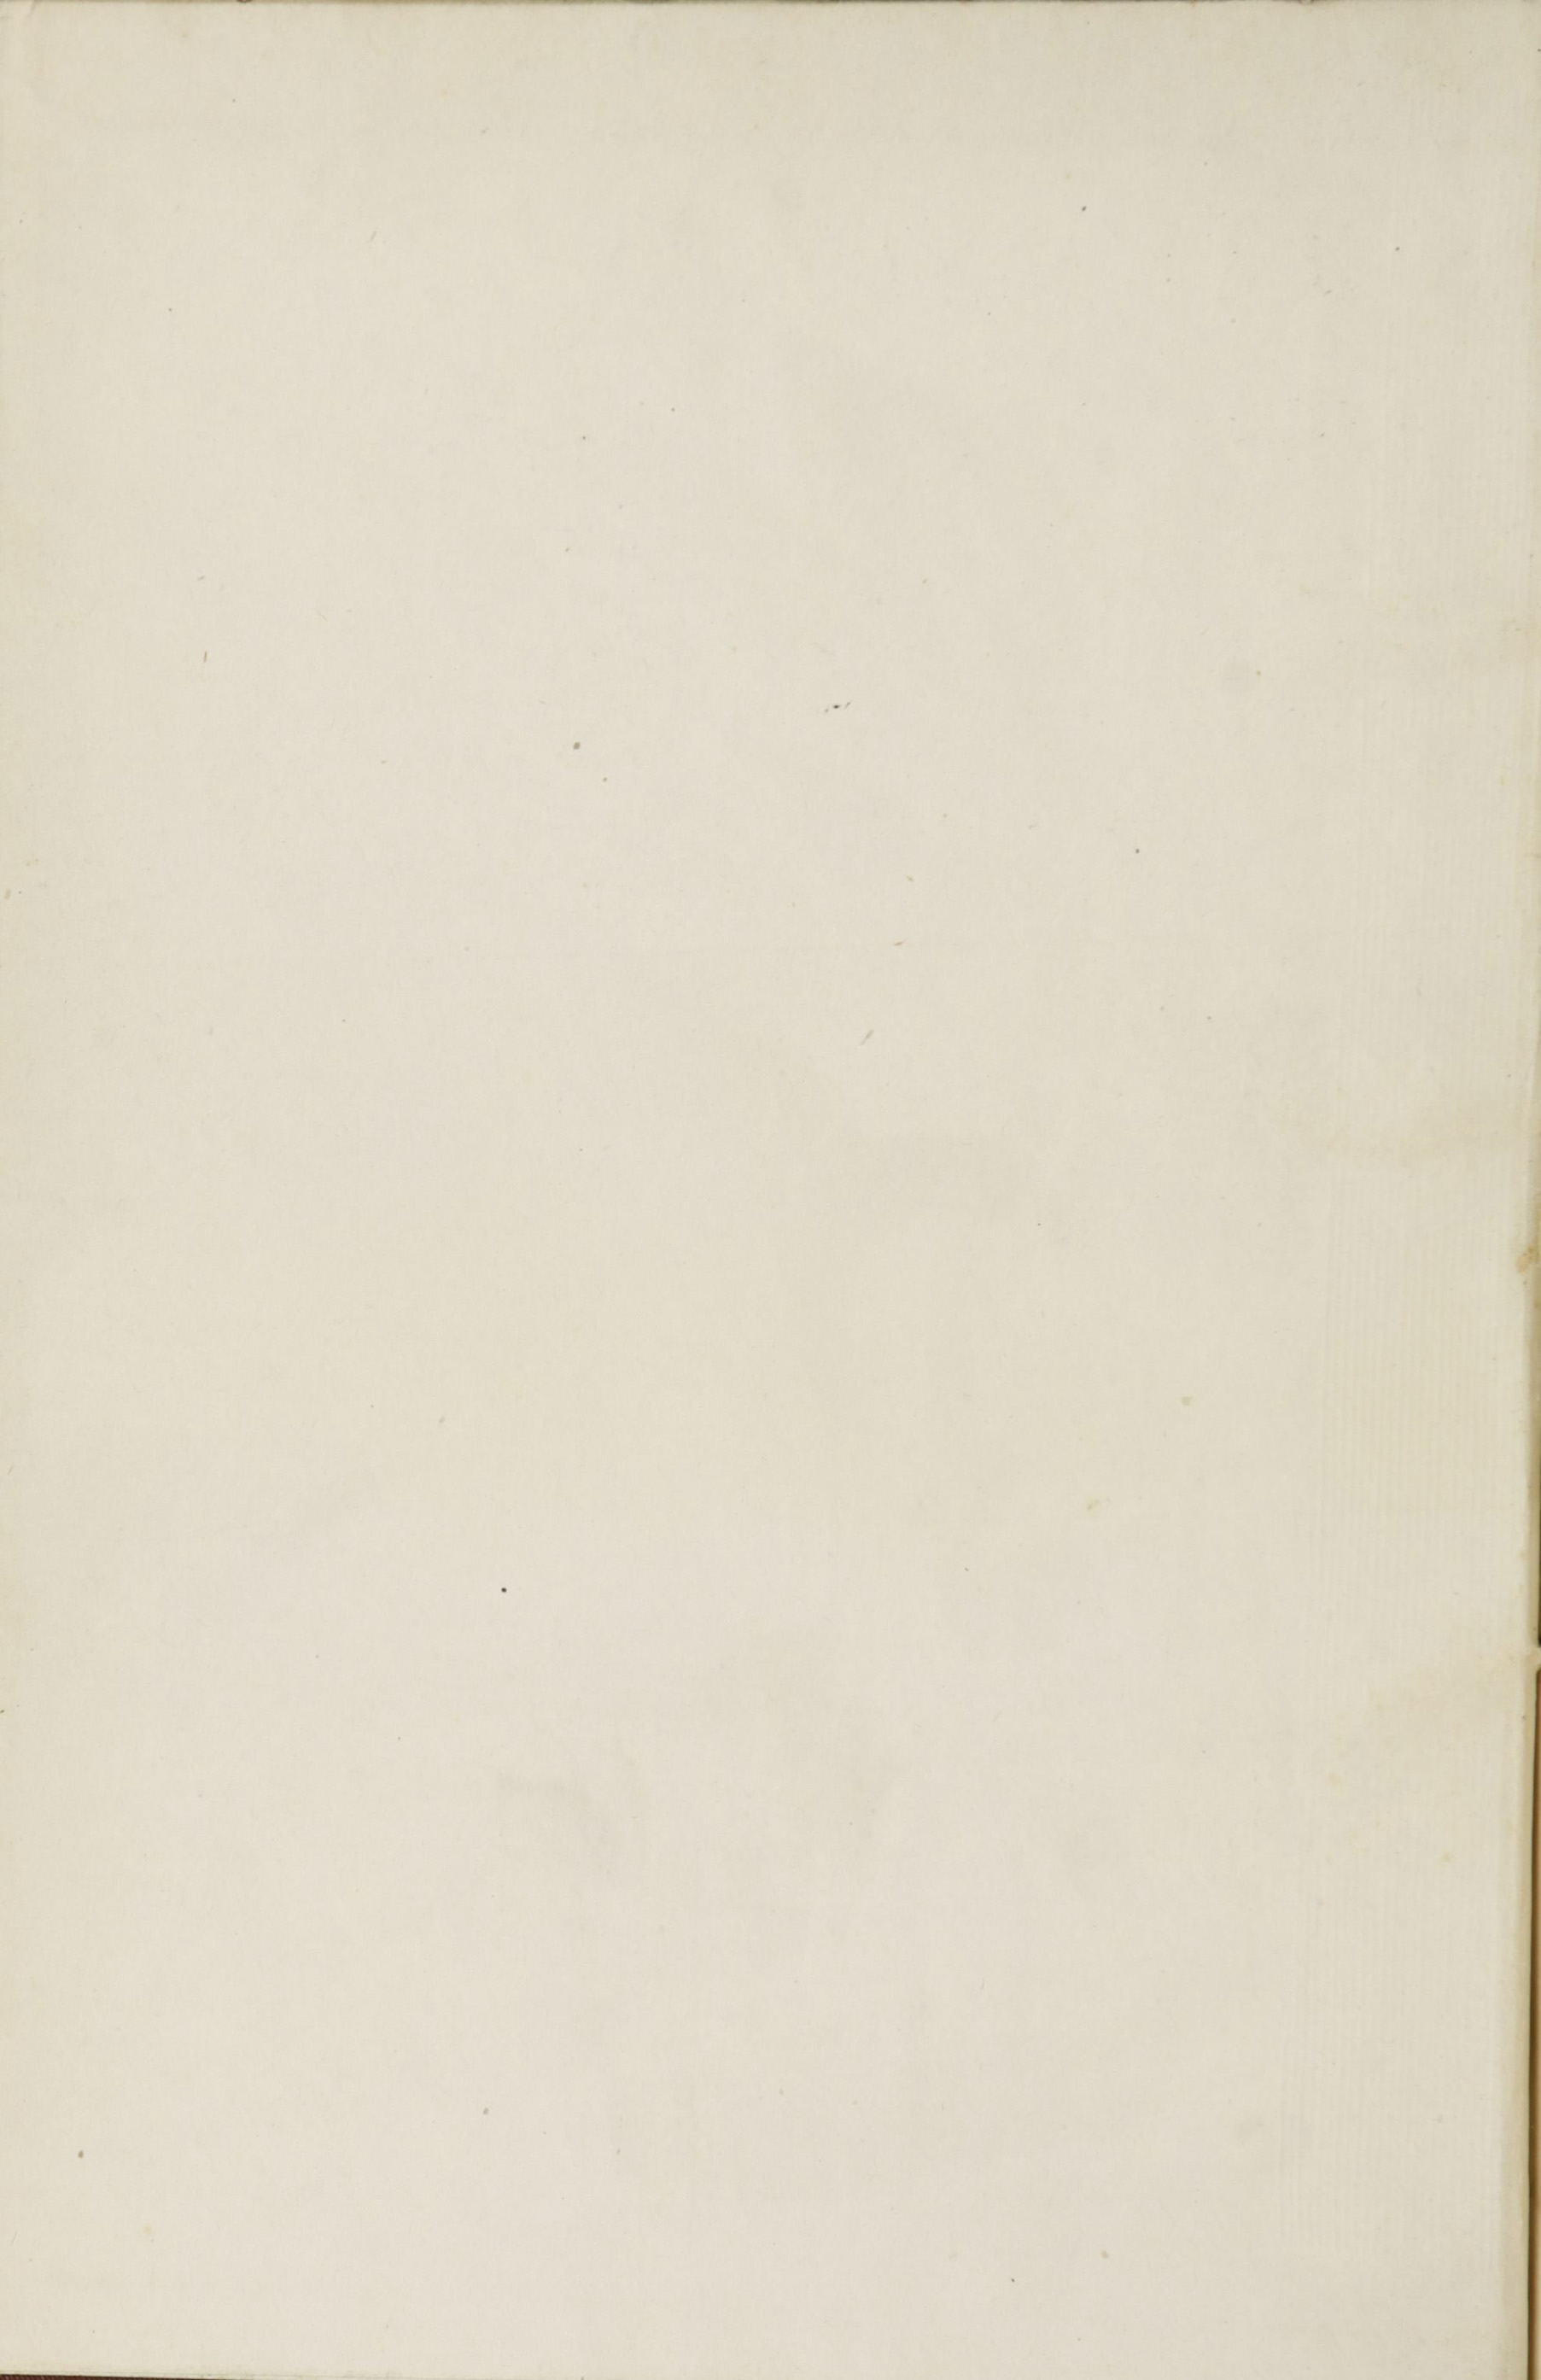 Charleston Yearbook, 1916, inside cover